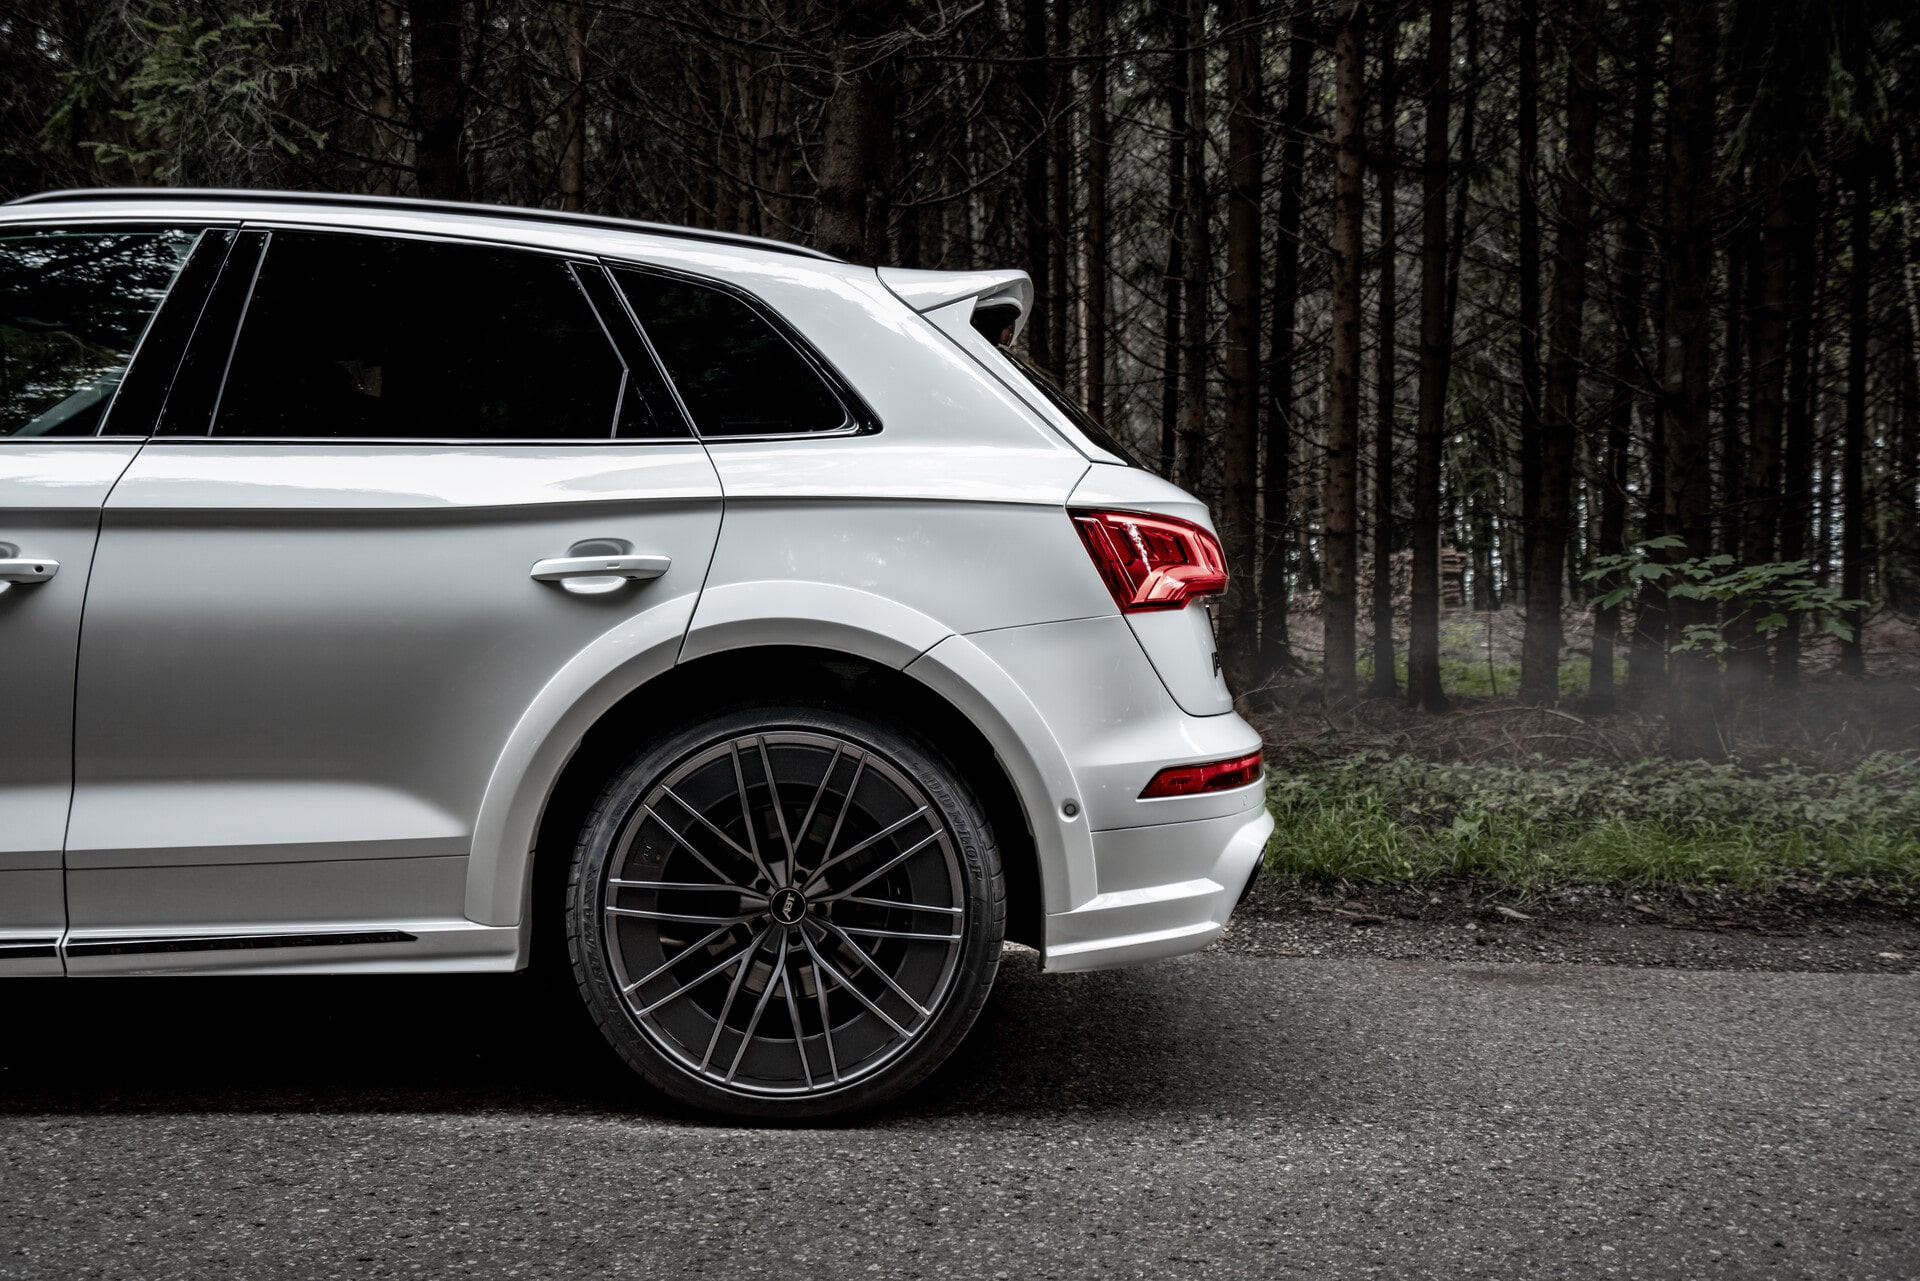 2020 Audi SQ5 by ABT Body Kit & Performance